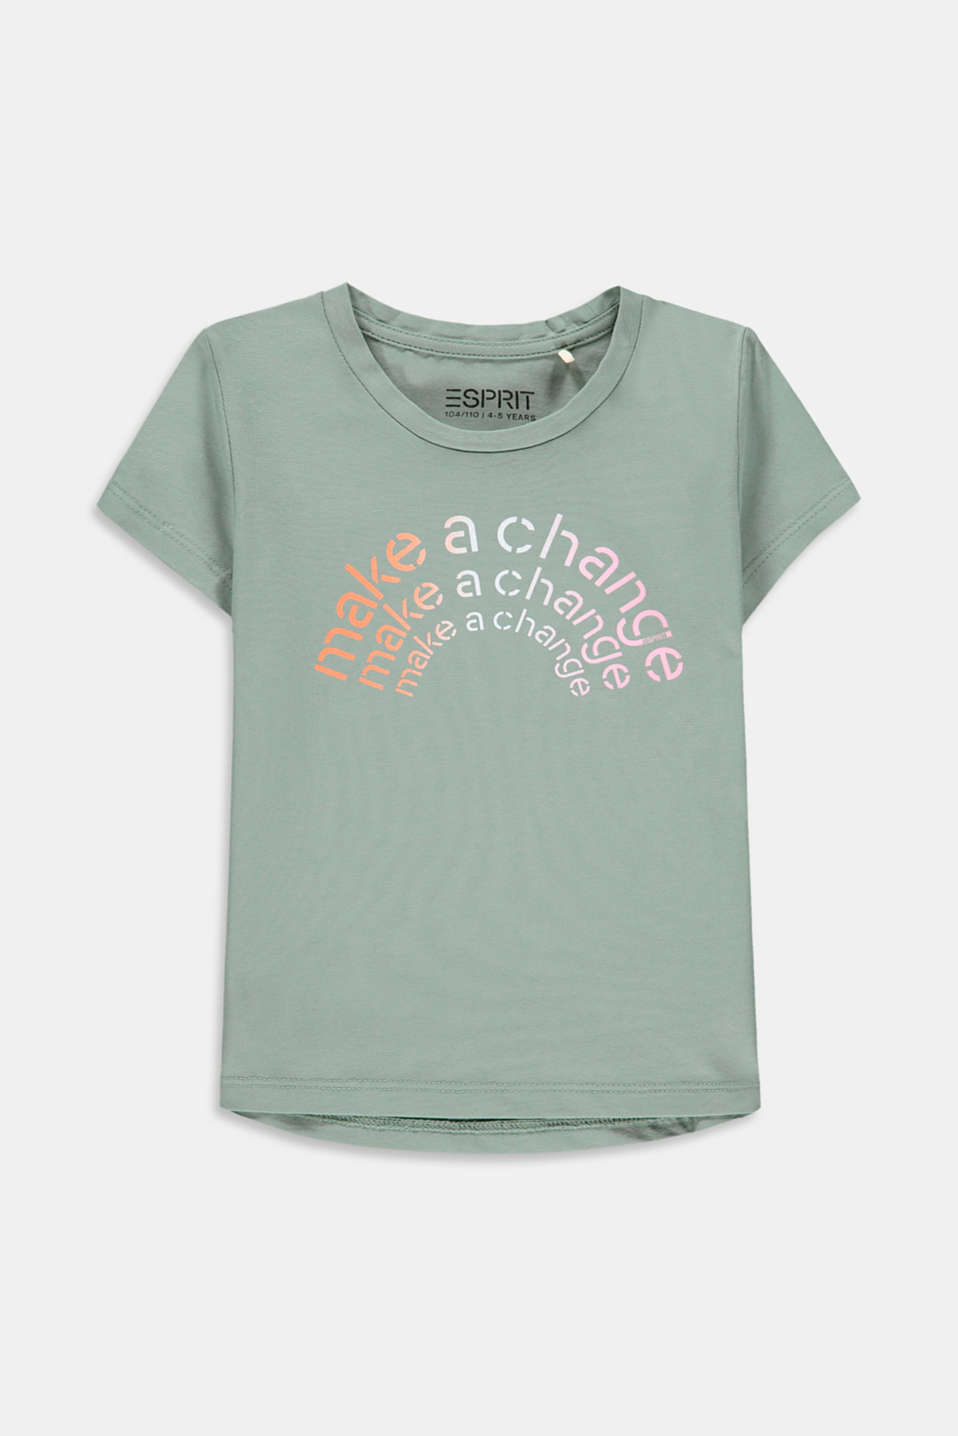 Esprit - T-shirt met statementprint